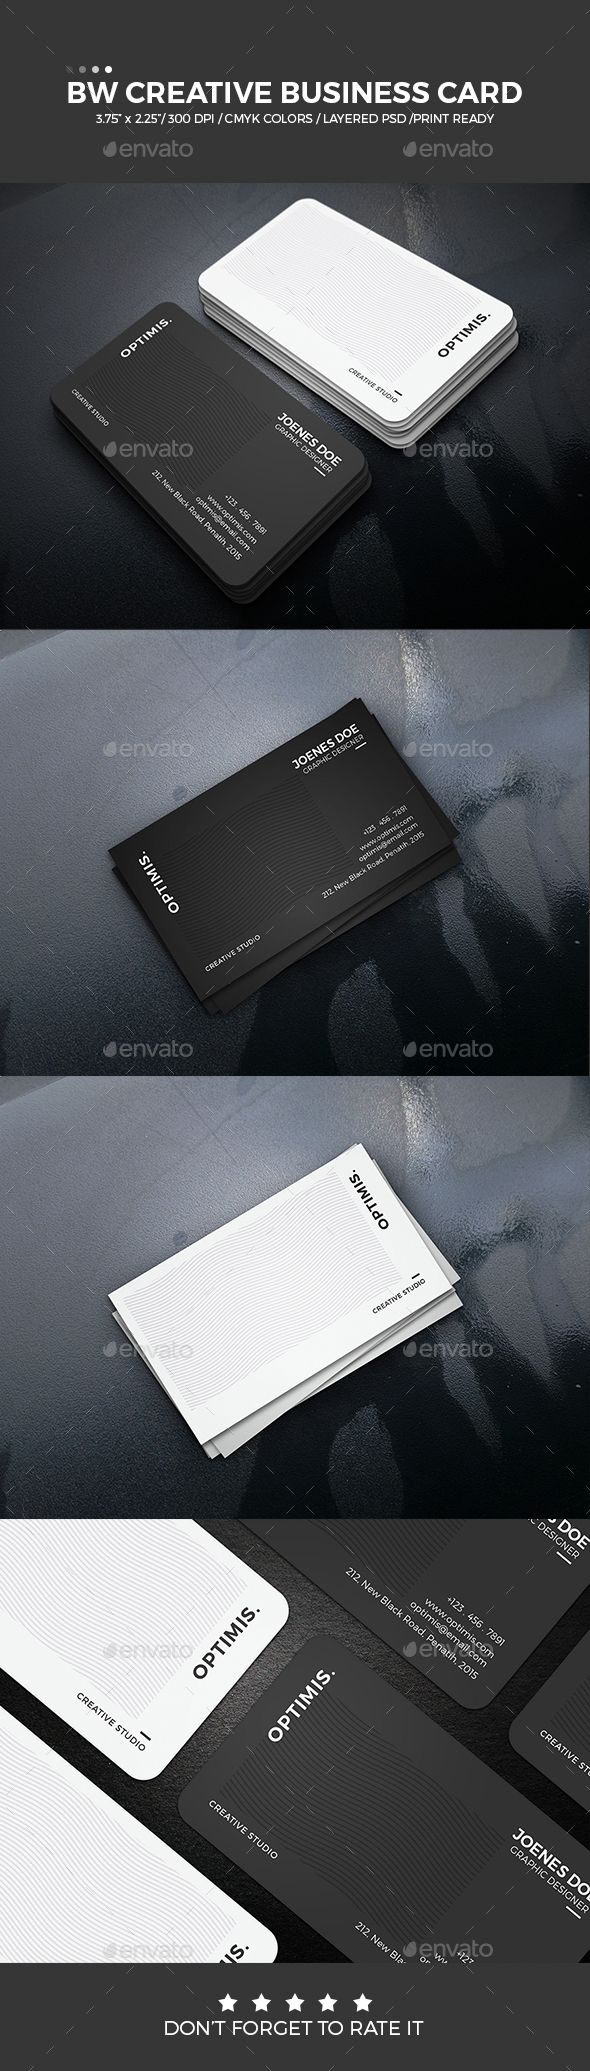 BW Creative Business Card black, blue, business card, clean, color, colorful, colour, colourful, corporate, creative, design, designer, elegant, green, mono, name card, pattern, pink, print, professional, simple, stylish, template, unique, white, best business card